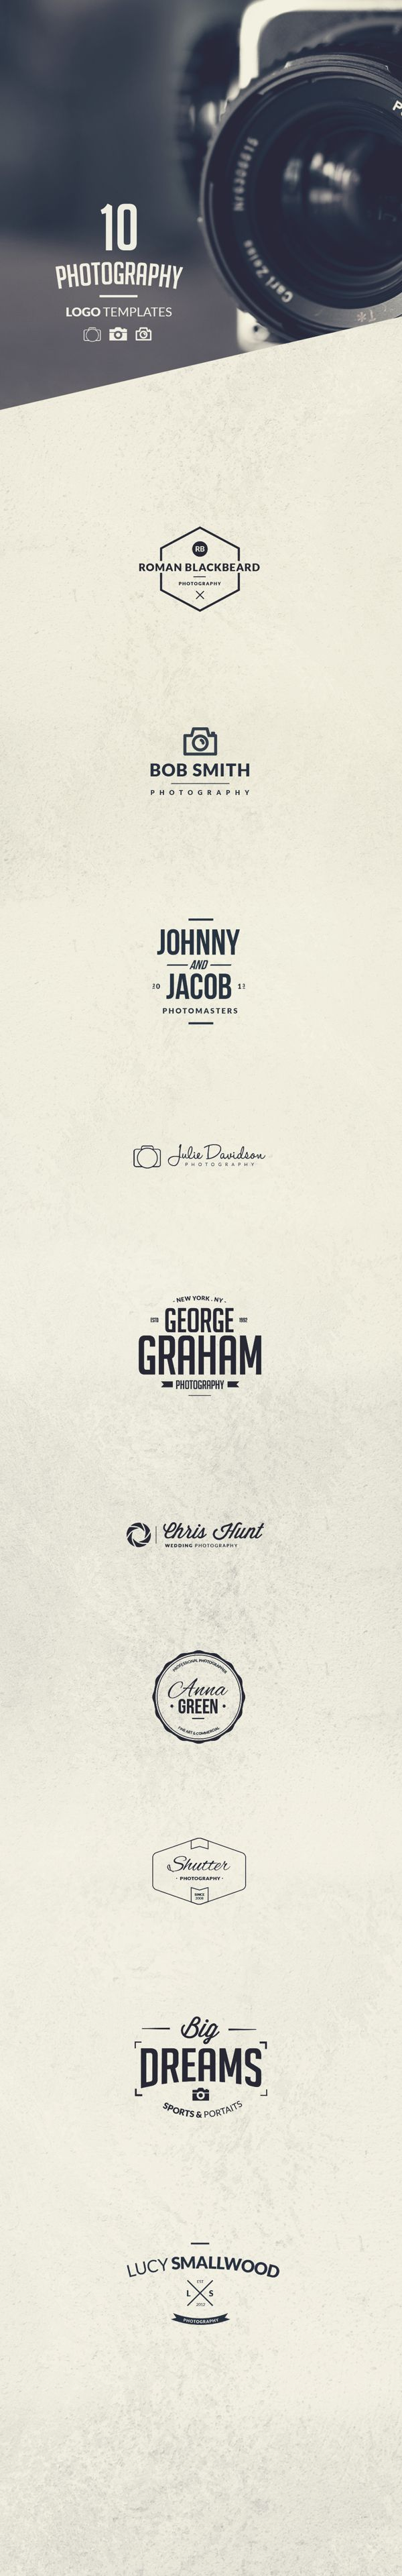 10 Photography Logo Templates by Tom Anders Watkins, via Behance  //  #LogoDesign #GraphicDesign #Inspiration